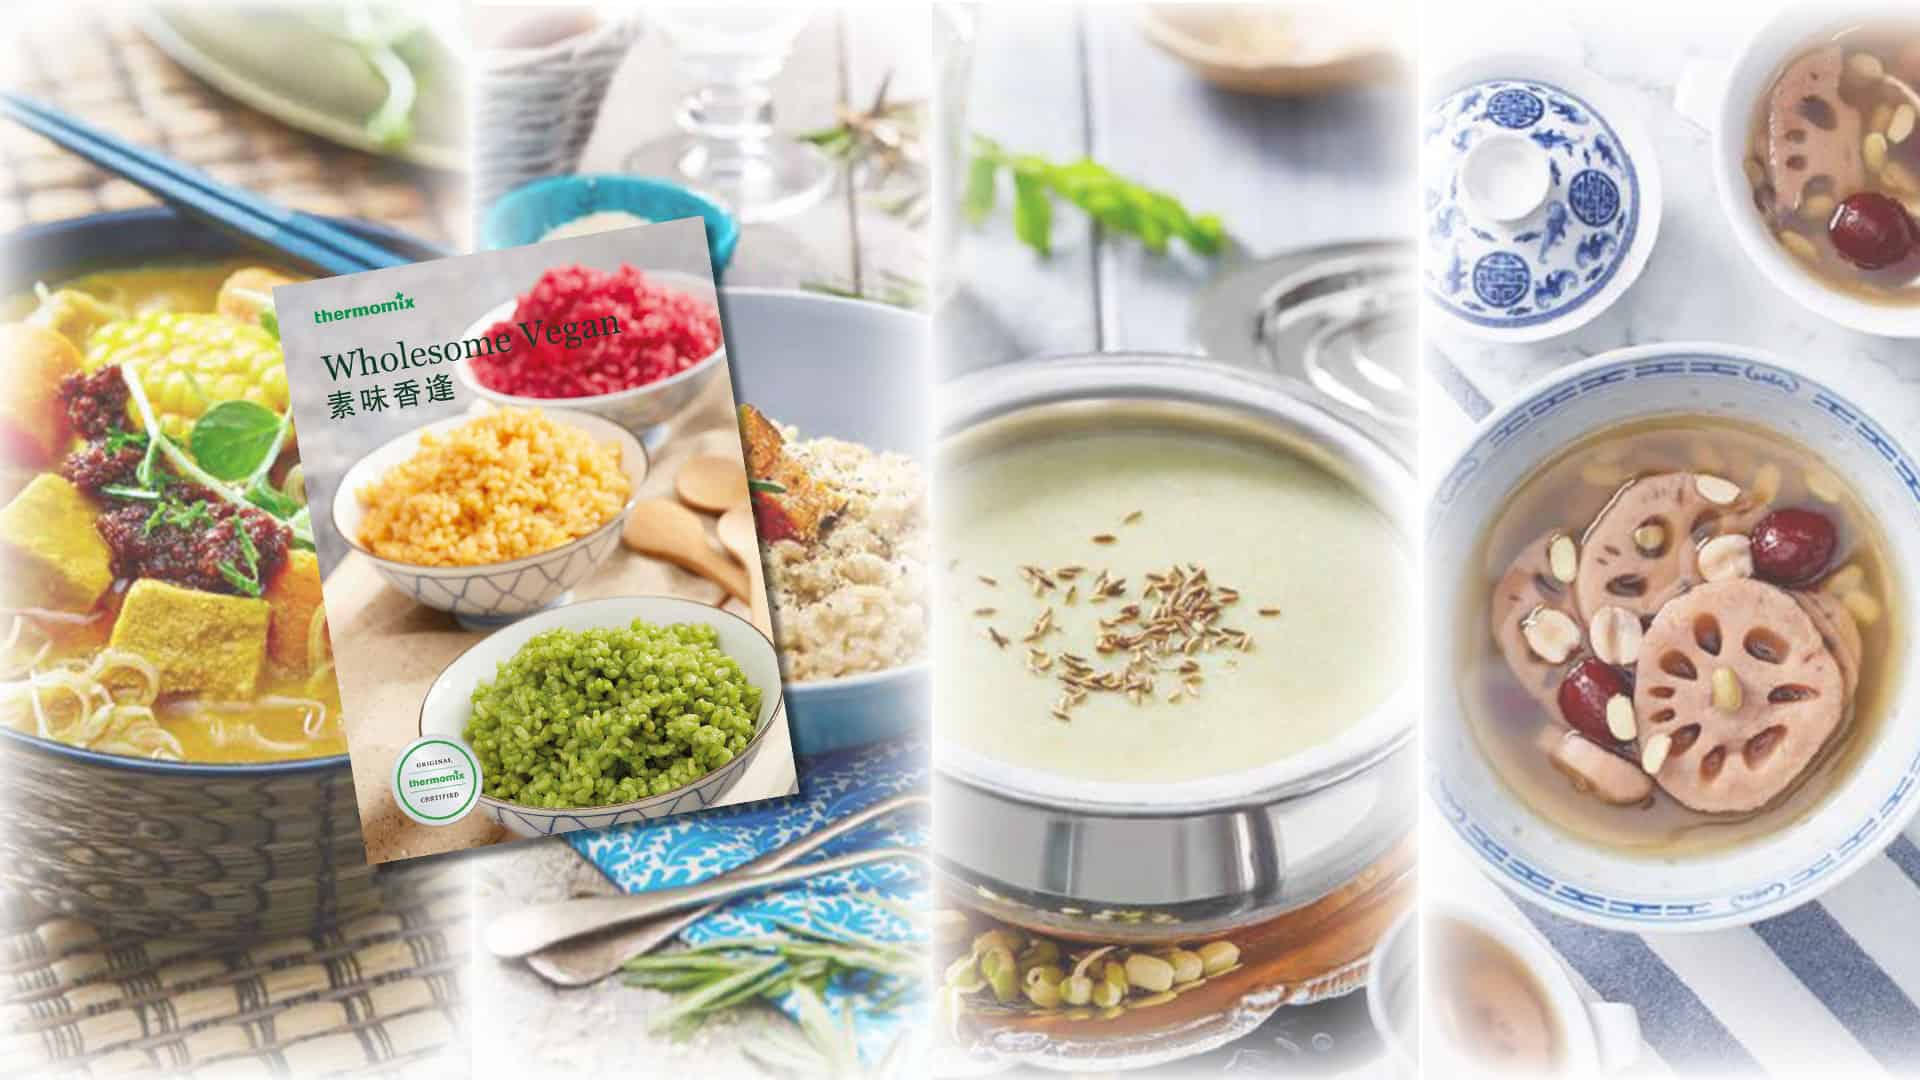 BUY NOW! THERMOMIX® WHOLESOME VEGAN!